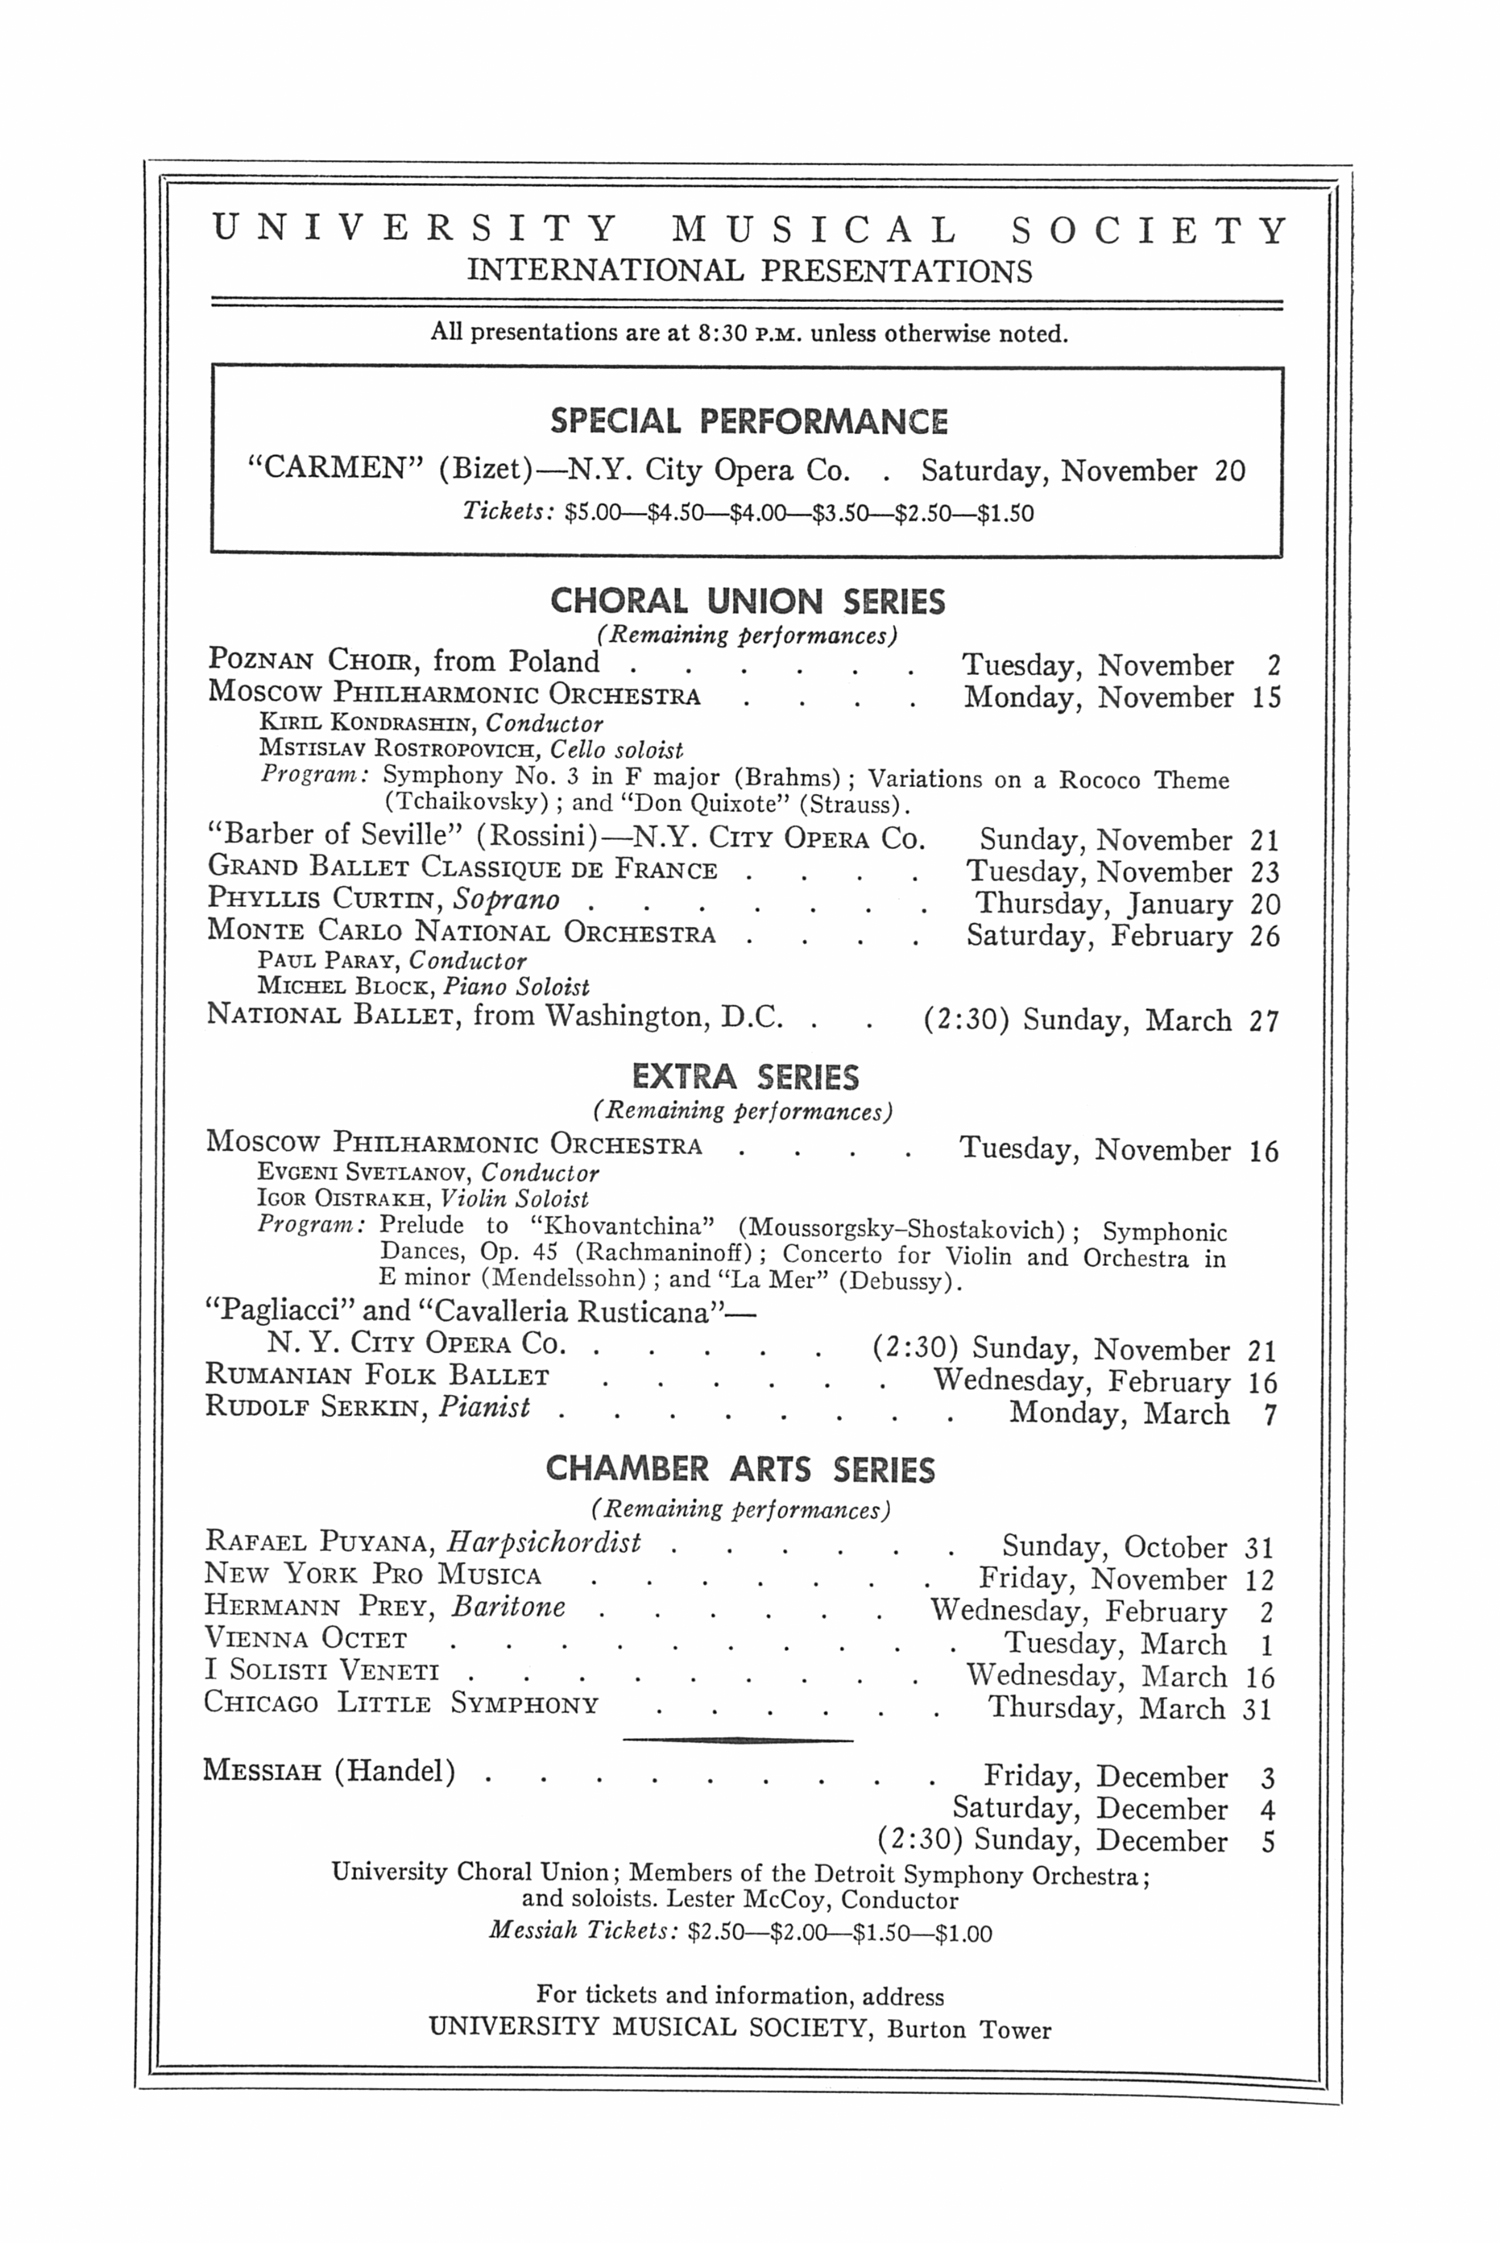 UMS Concert Program, October 29, 1965: The Czech Philharmonic Orchestra --  image